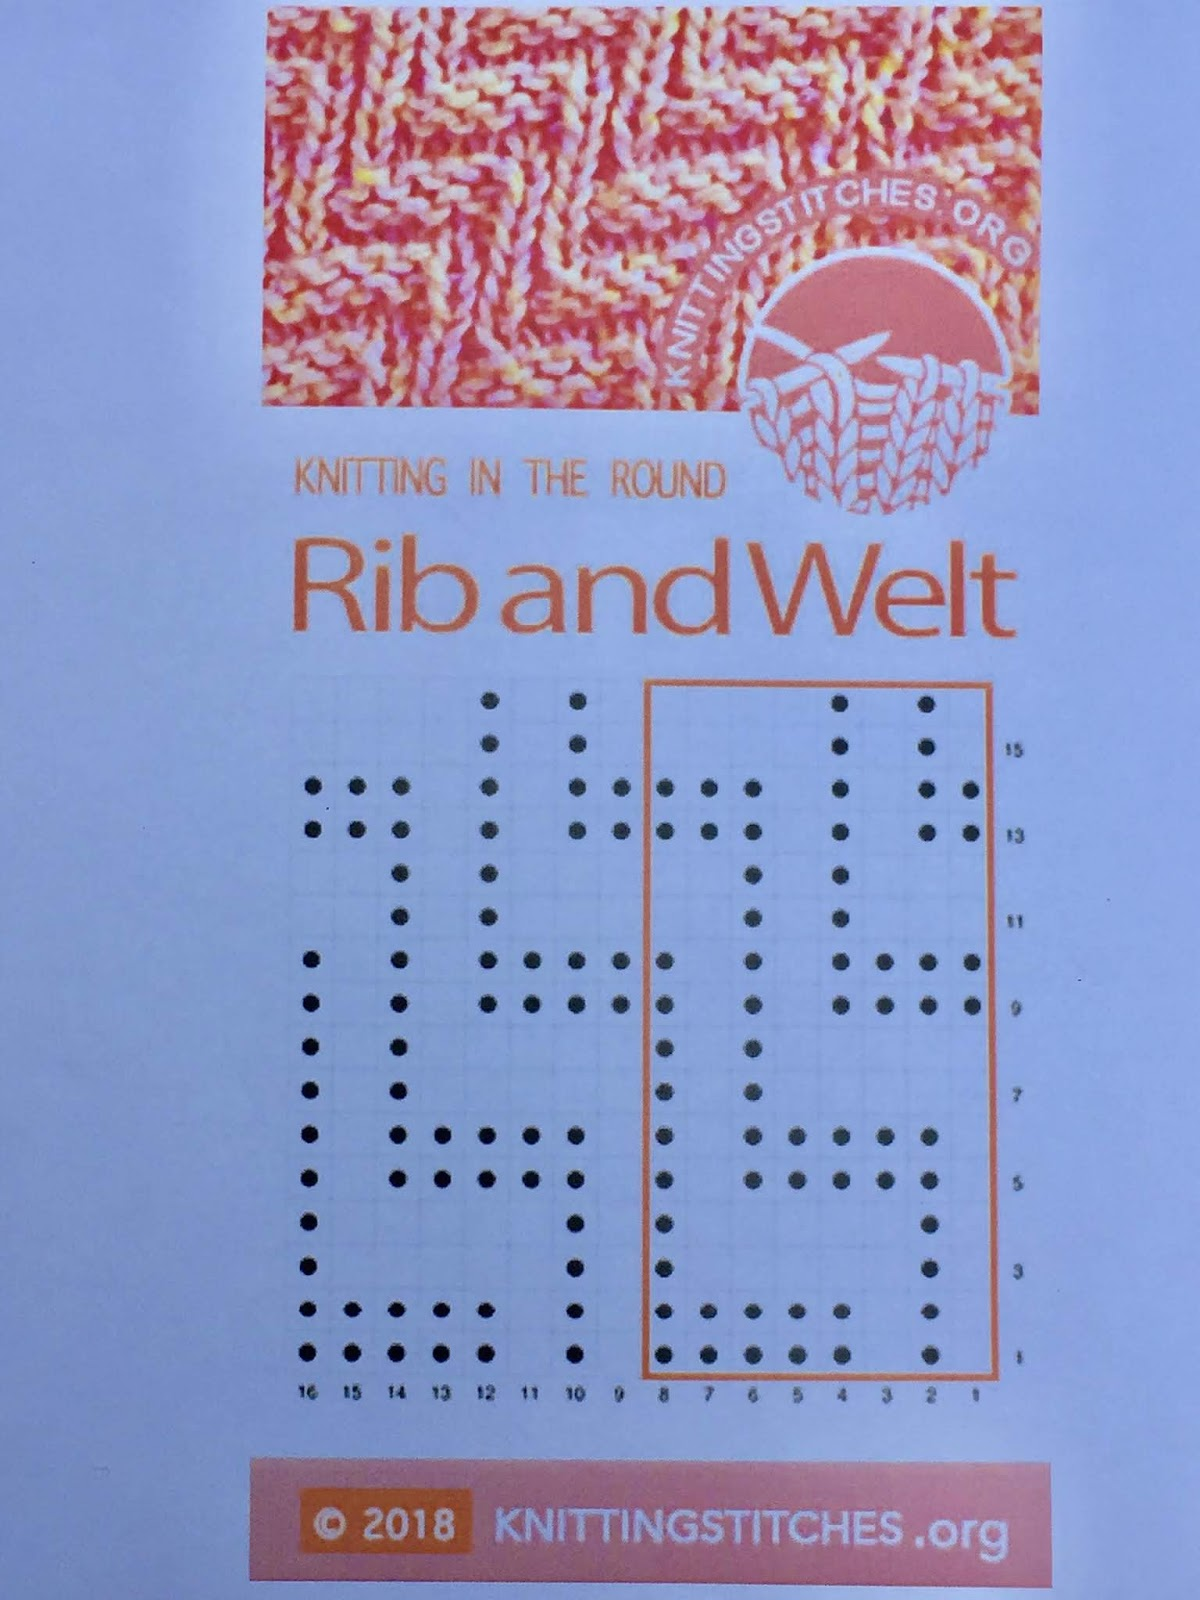 Knitting Stitches 2018 - Rib and Welt in the round